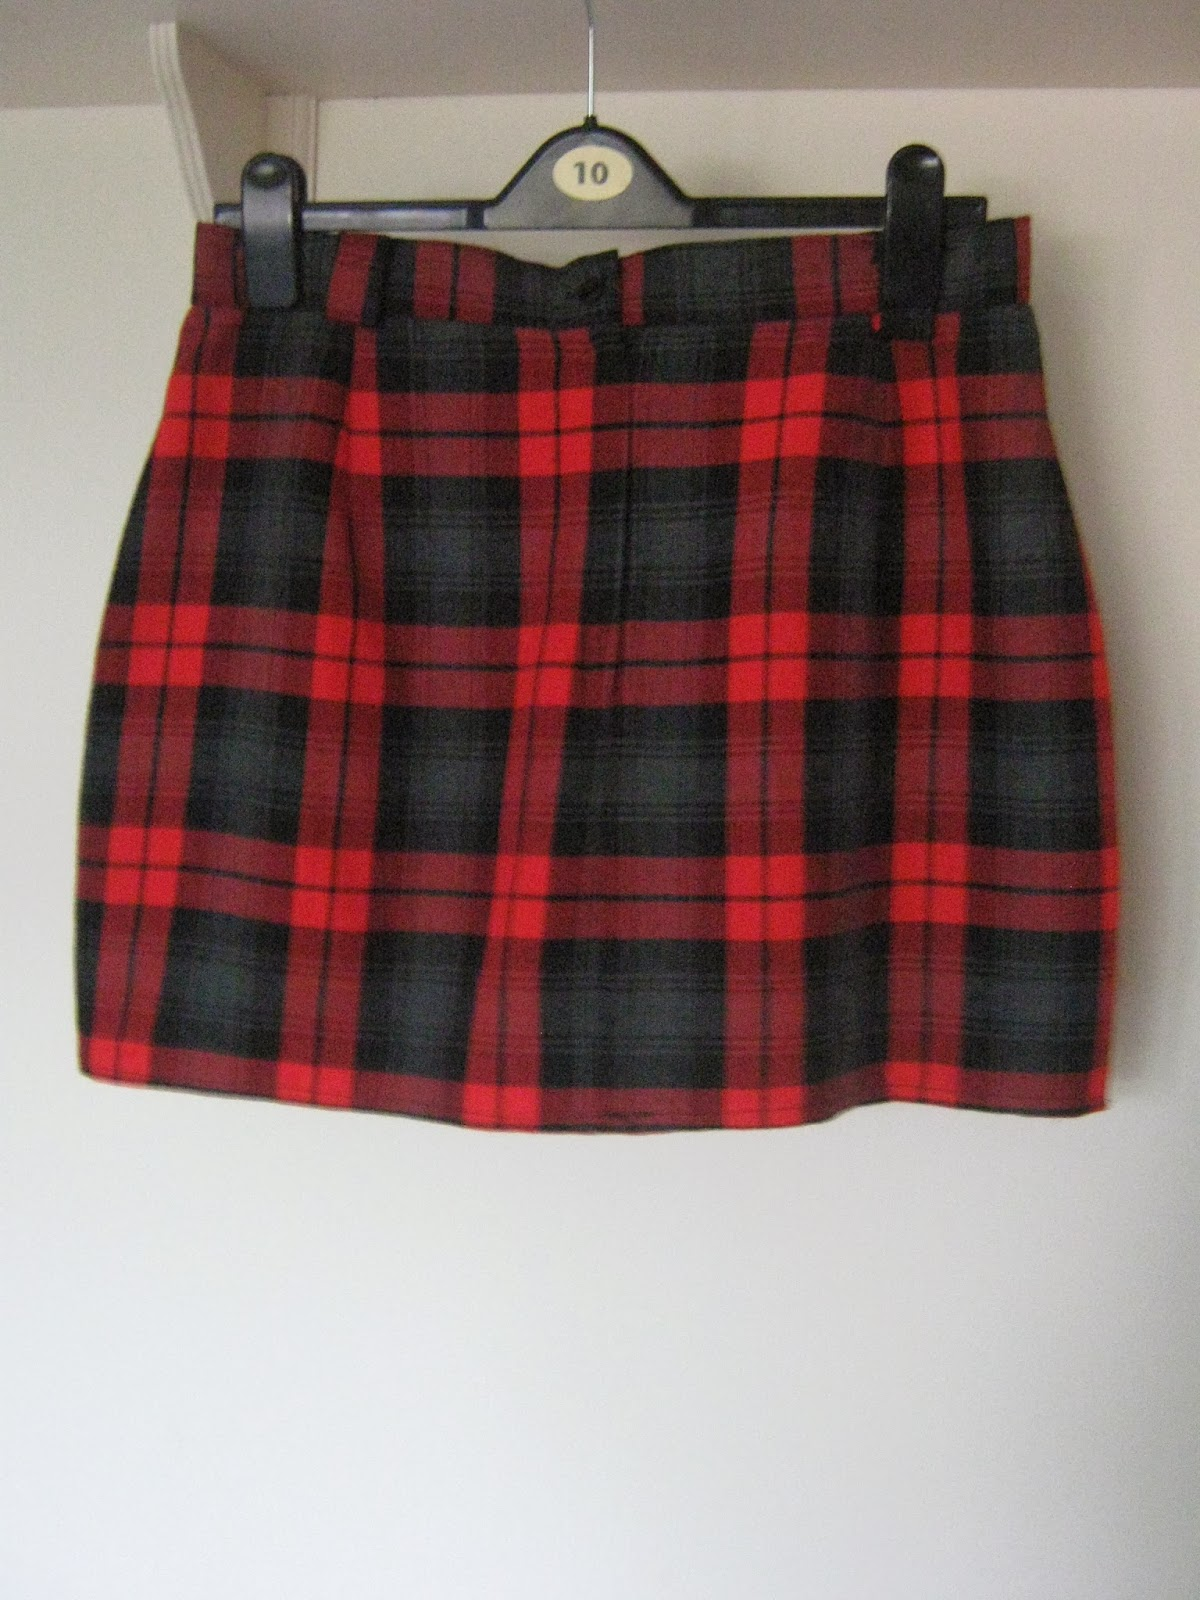 Tartan Skirt Refashion